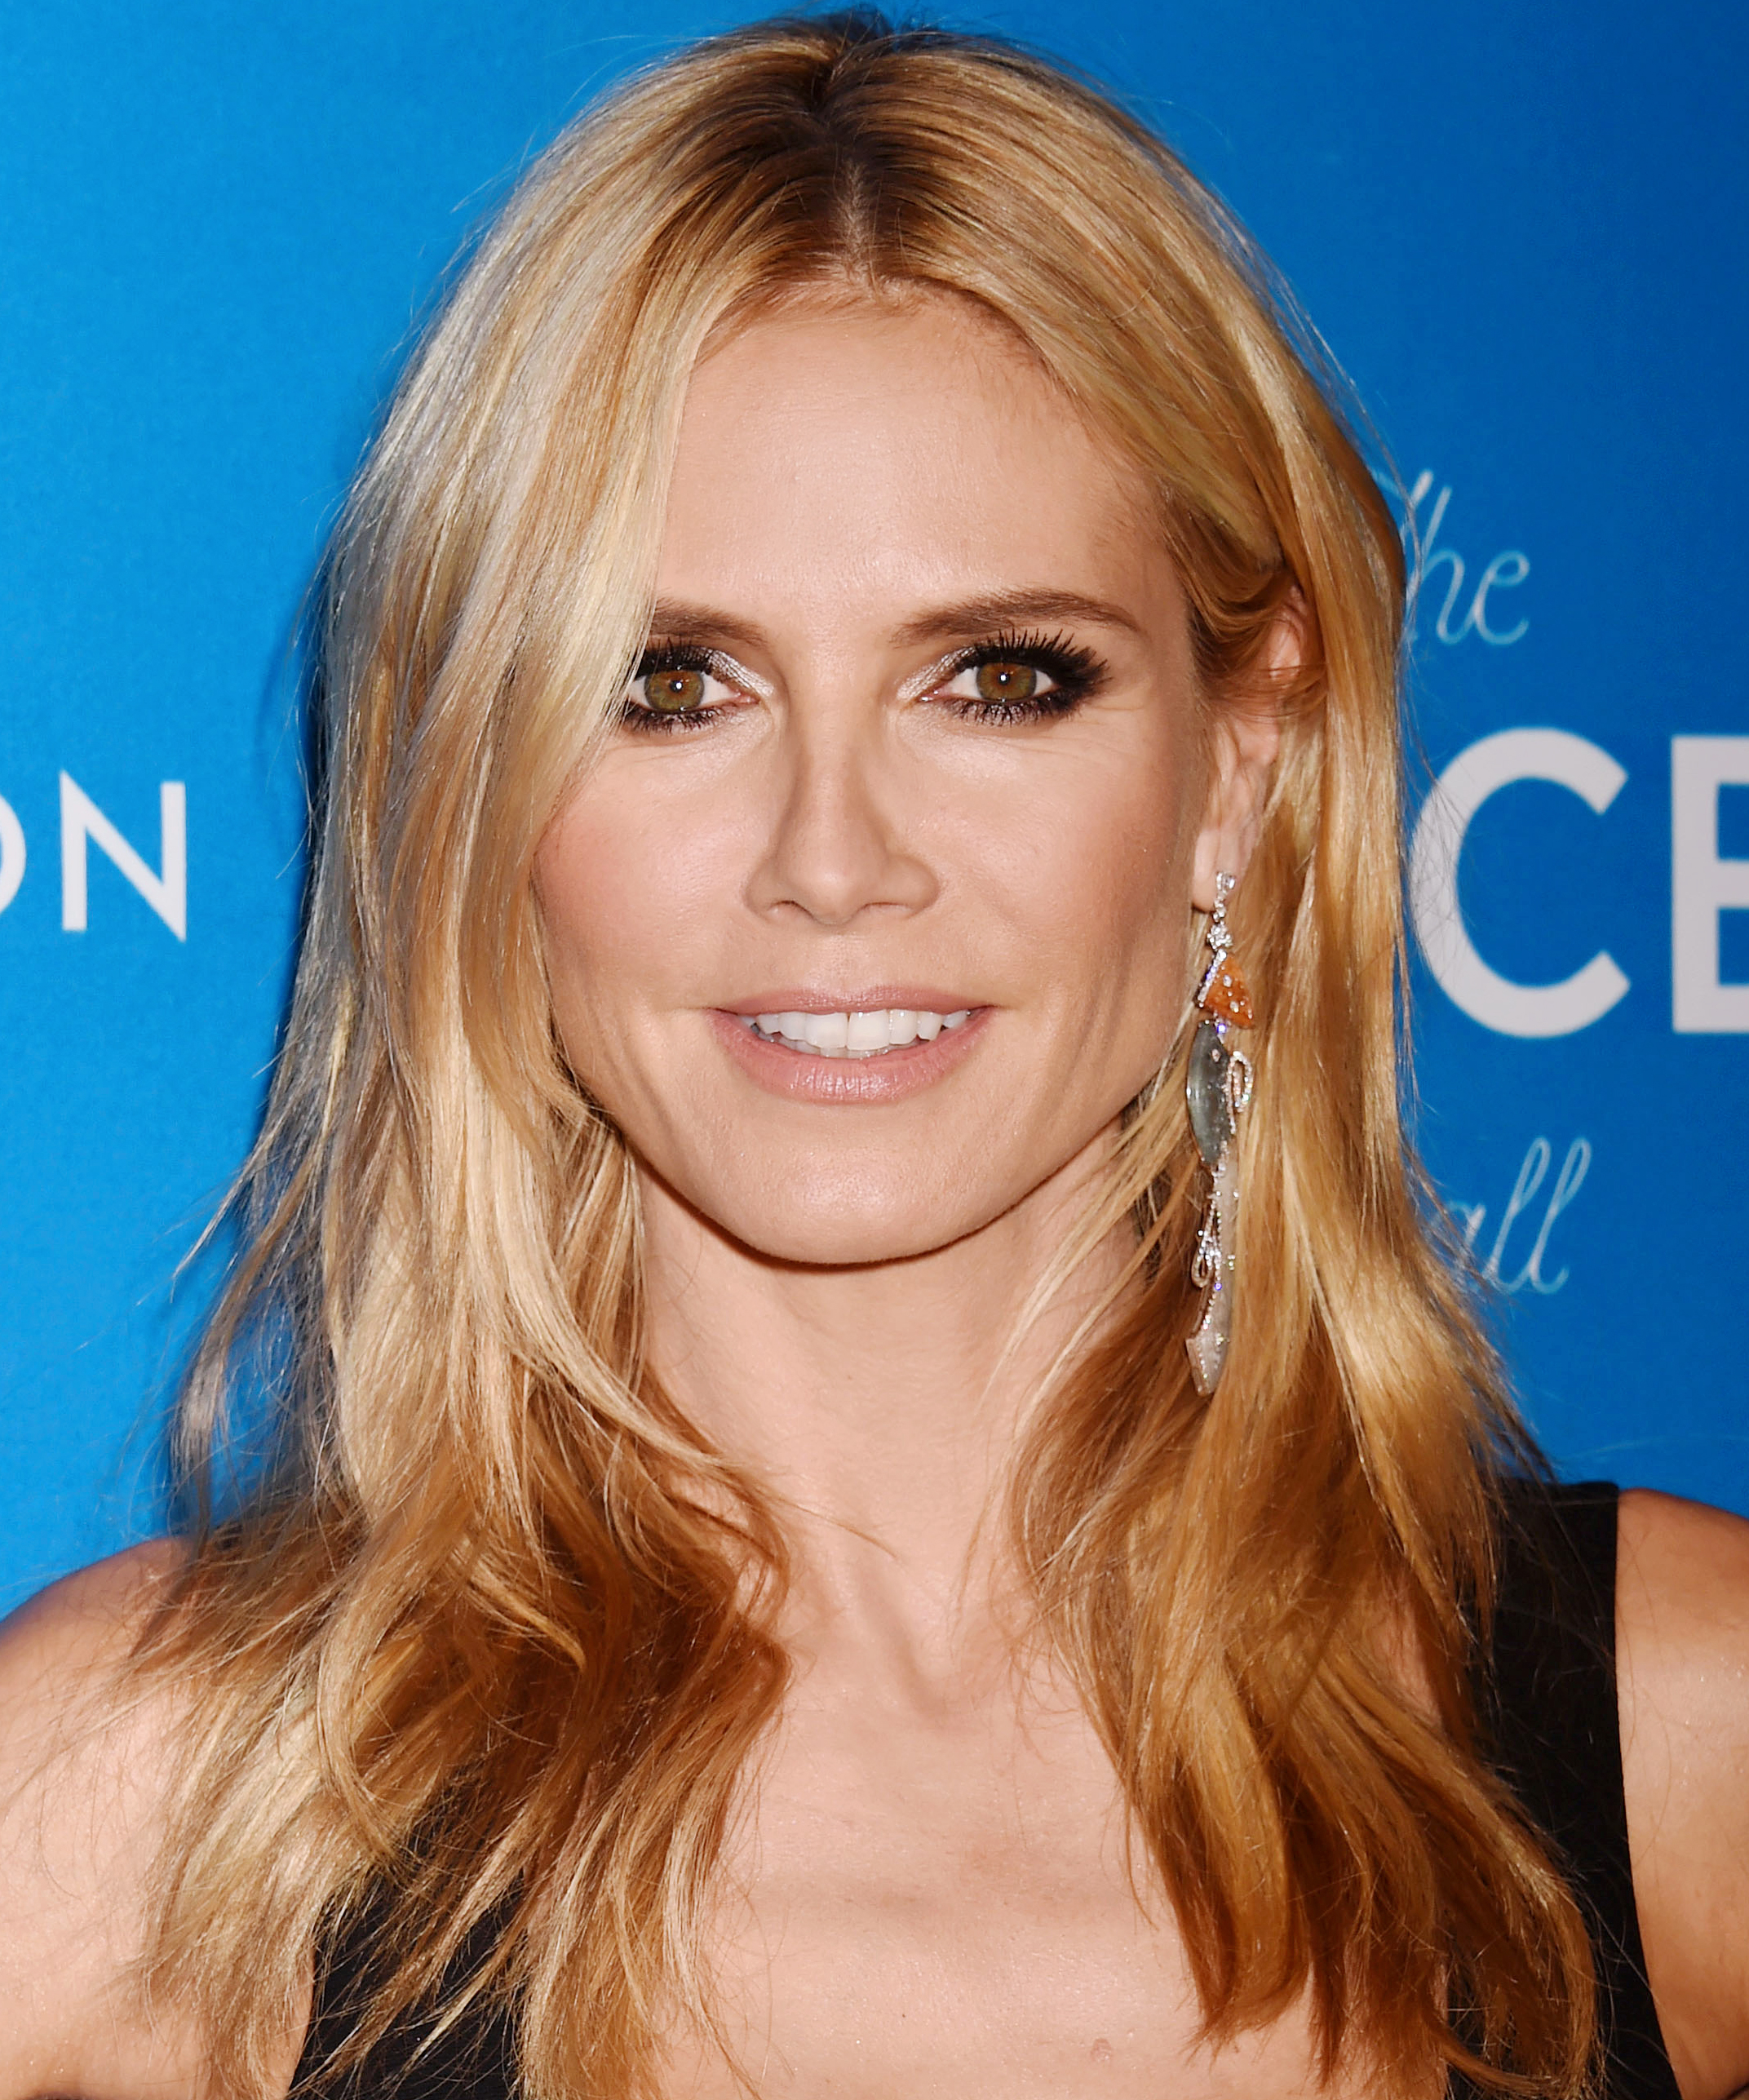 Heidi Klum Explains How Her Oldest Daughter, Leni, Is Just Like Her